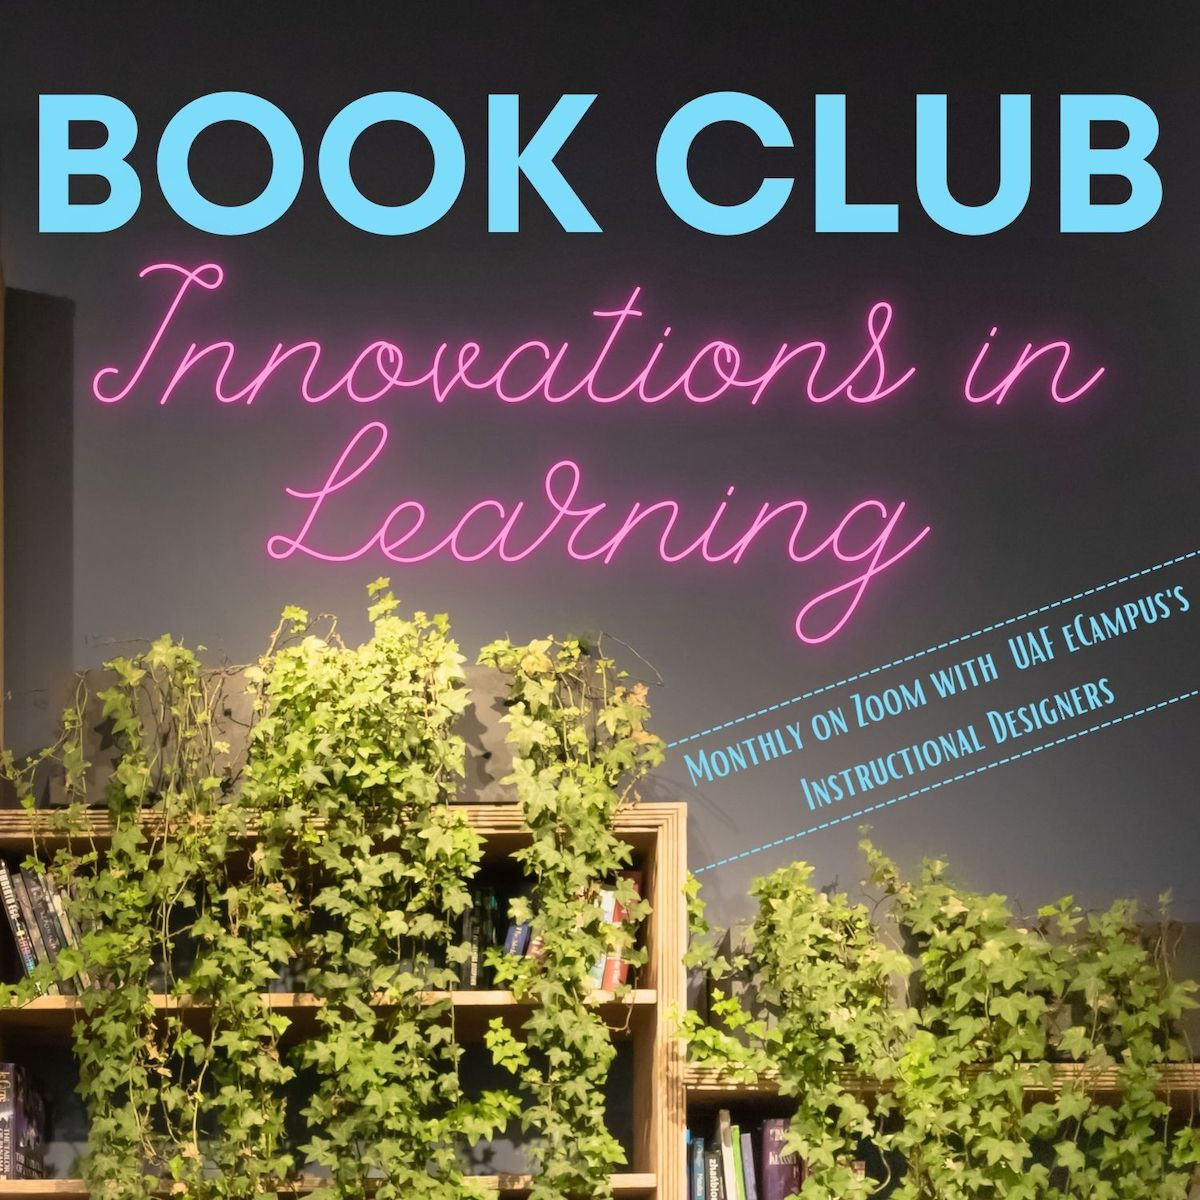 """ivy growing over bookshelves with """"Book Club: Innovations in Learning"""" written above"""